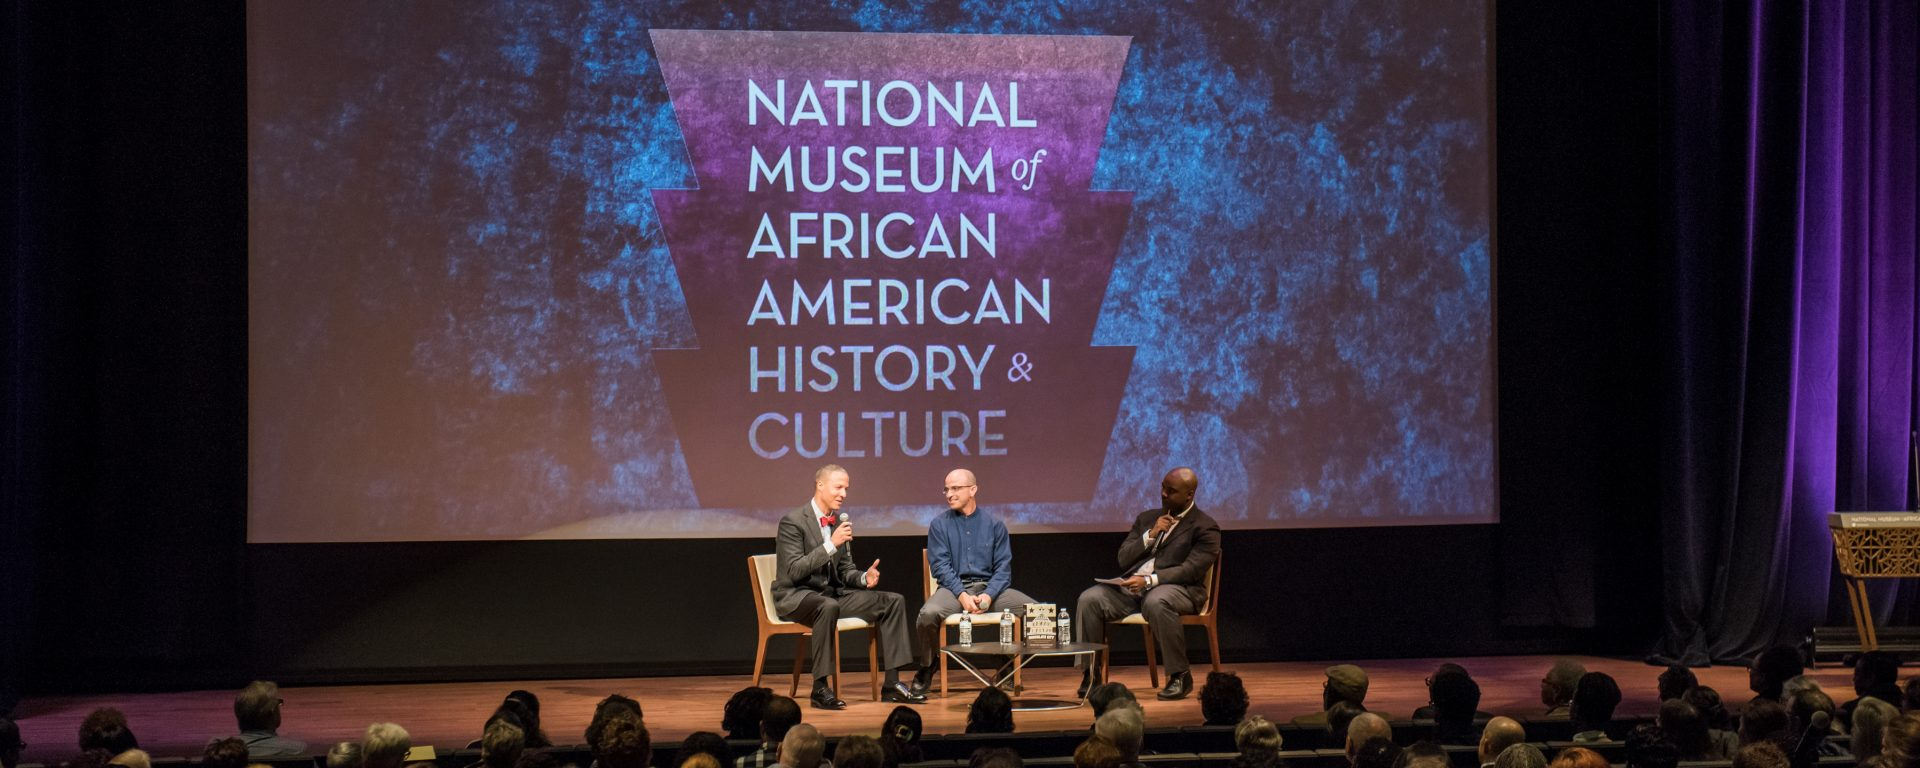 George Derek Musgrove, History, launches book at the National Museum of African American History and Culture